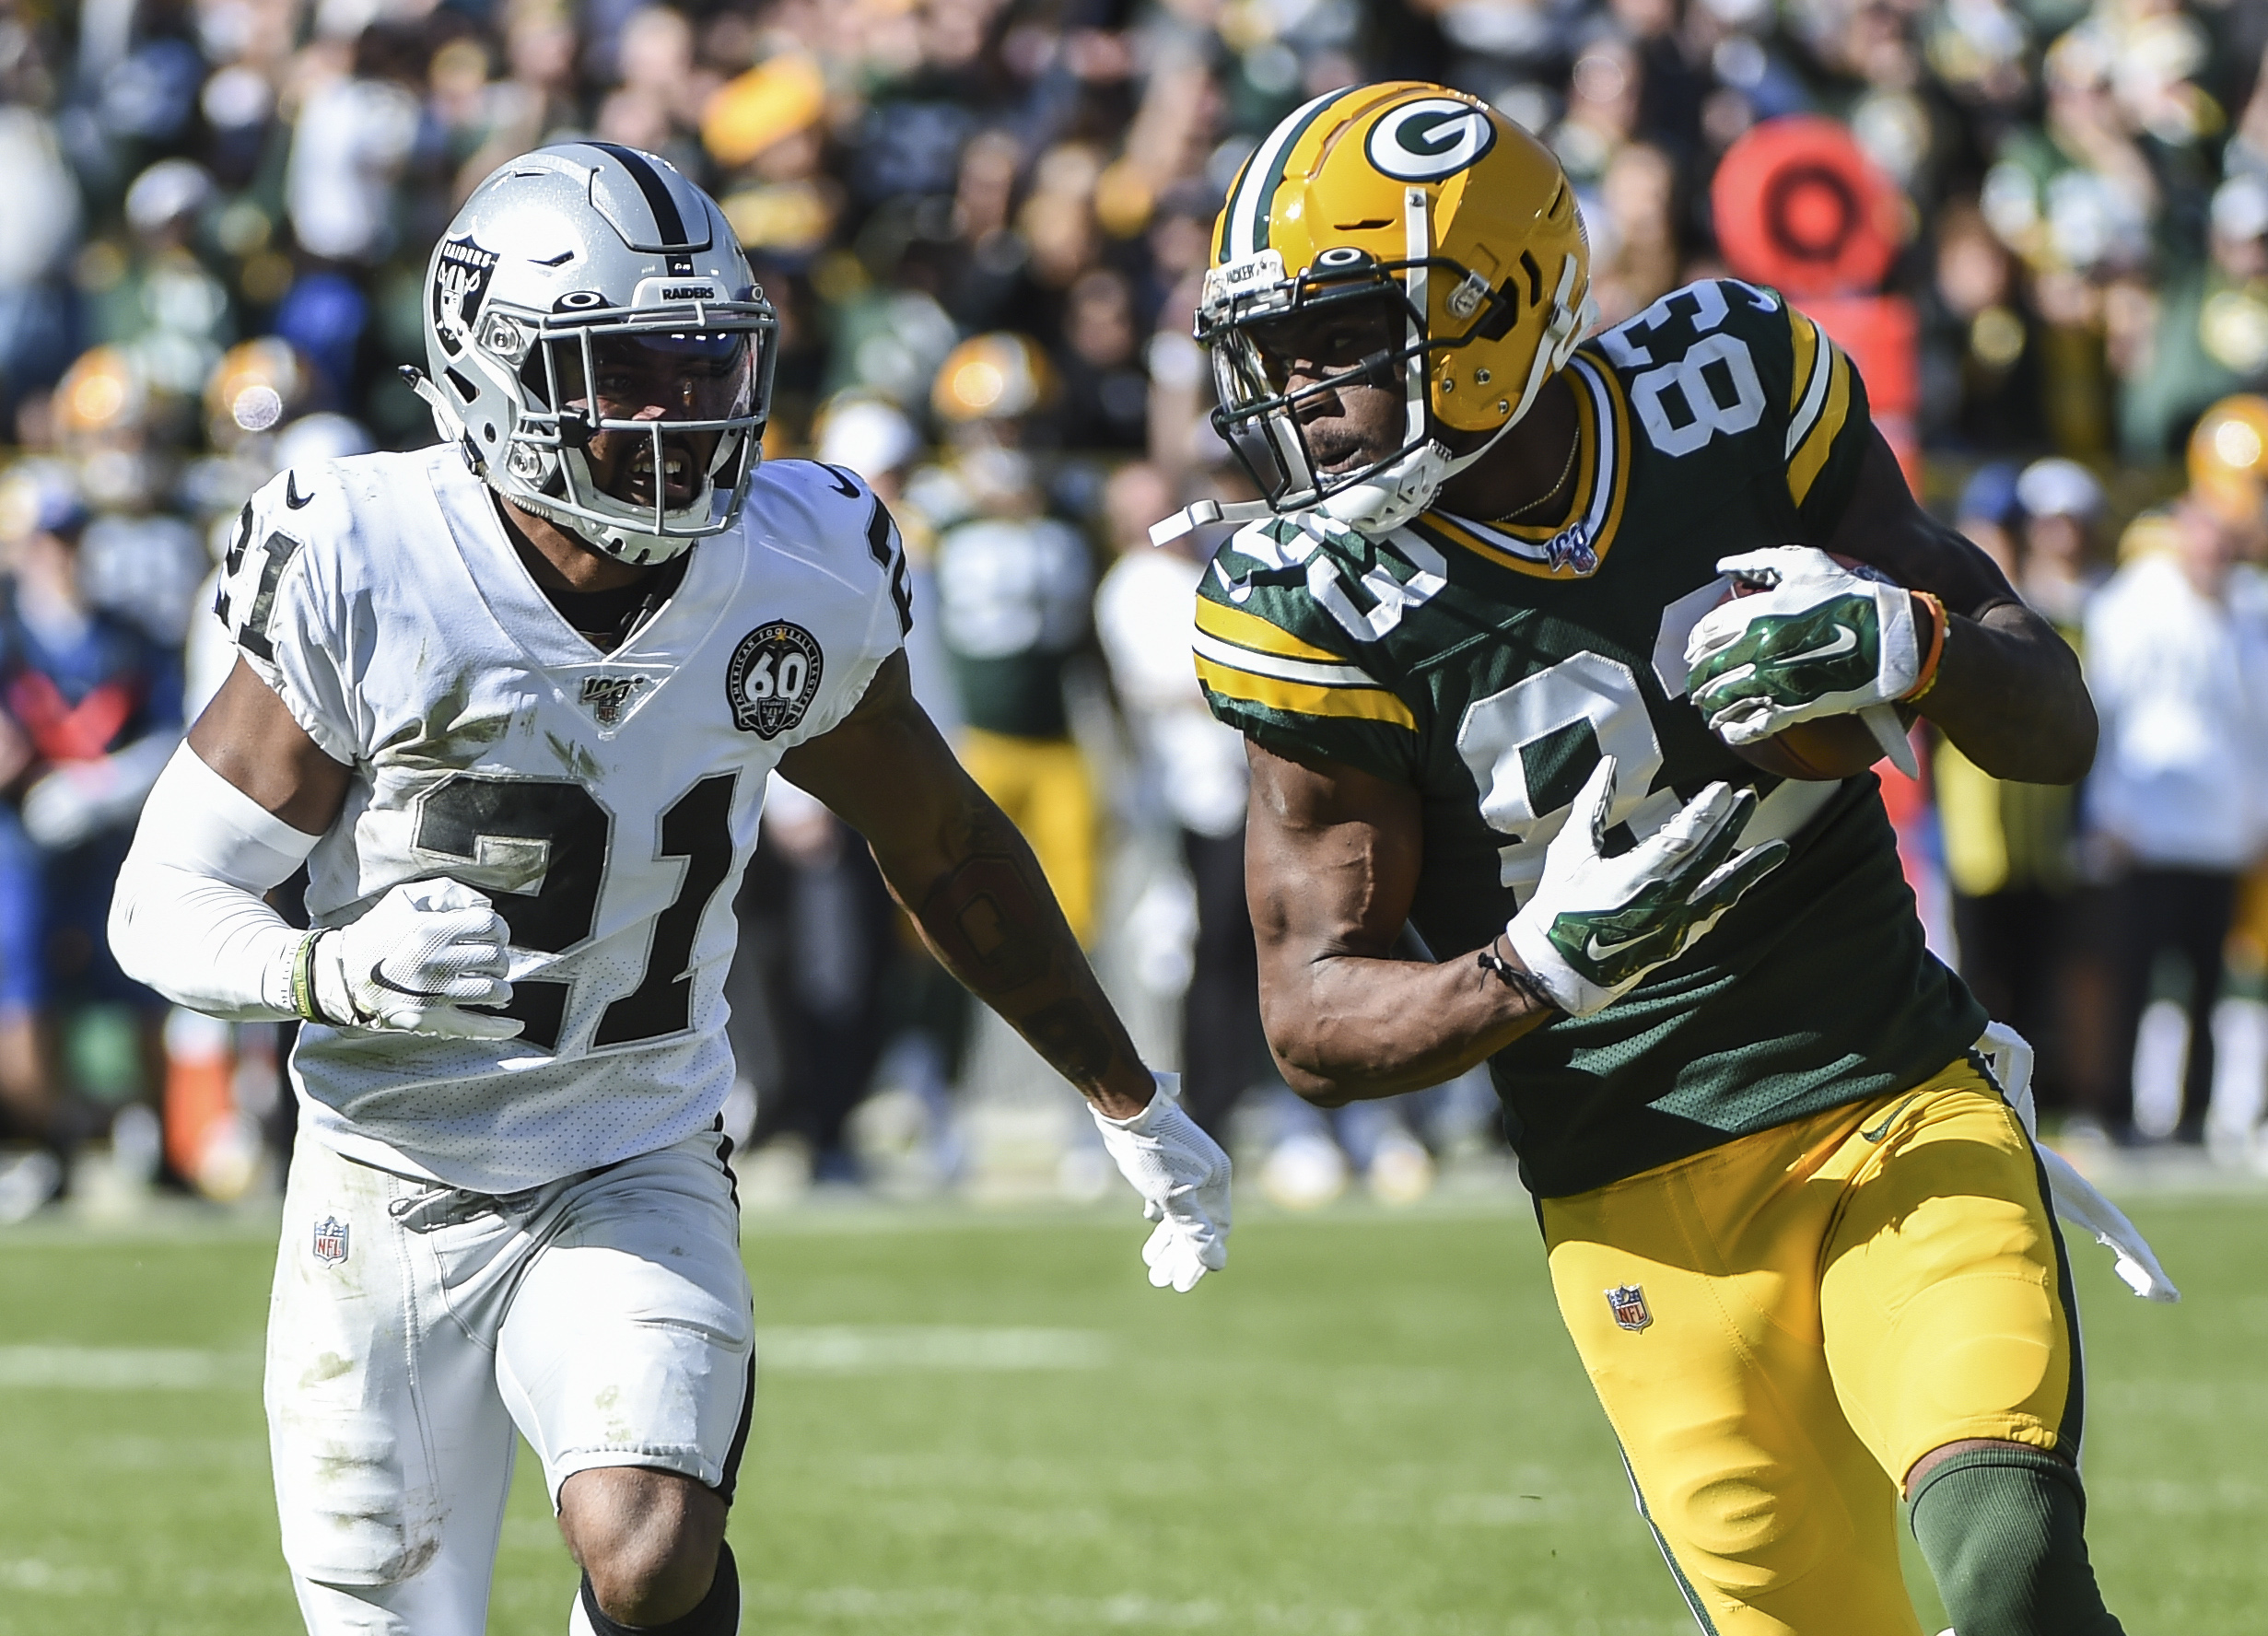 Valdes-Scantling, St. Brown Continue to Show Progress for the Packers at WR